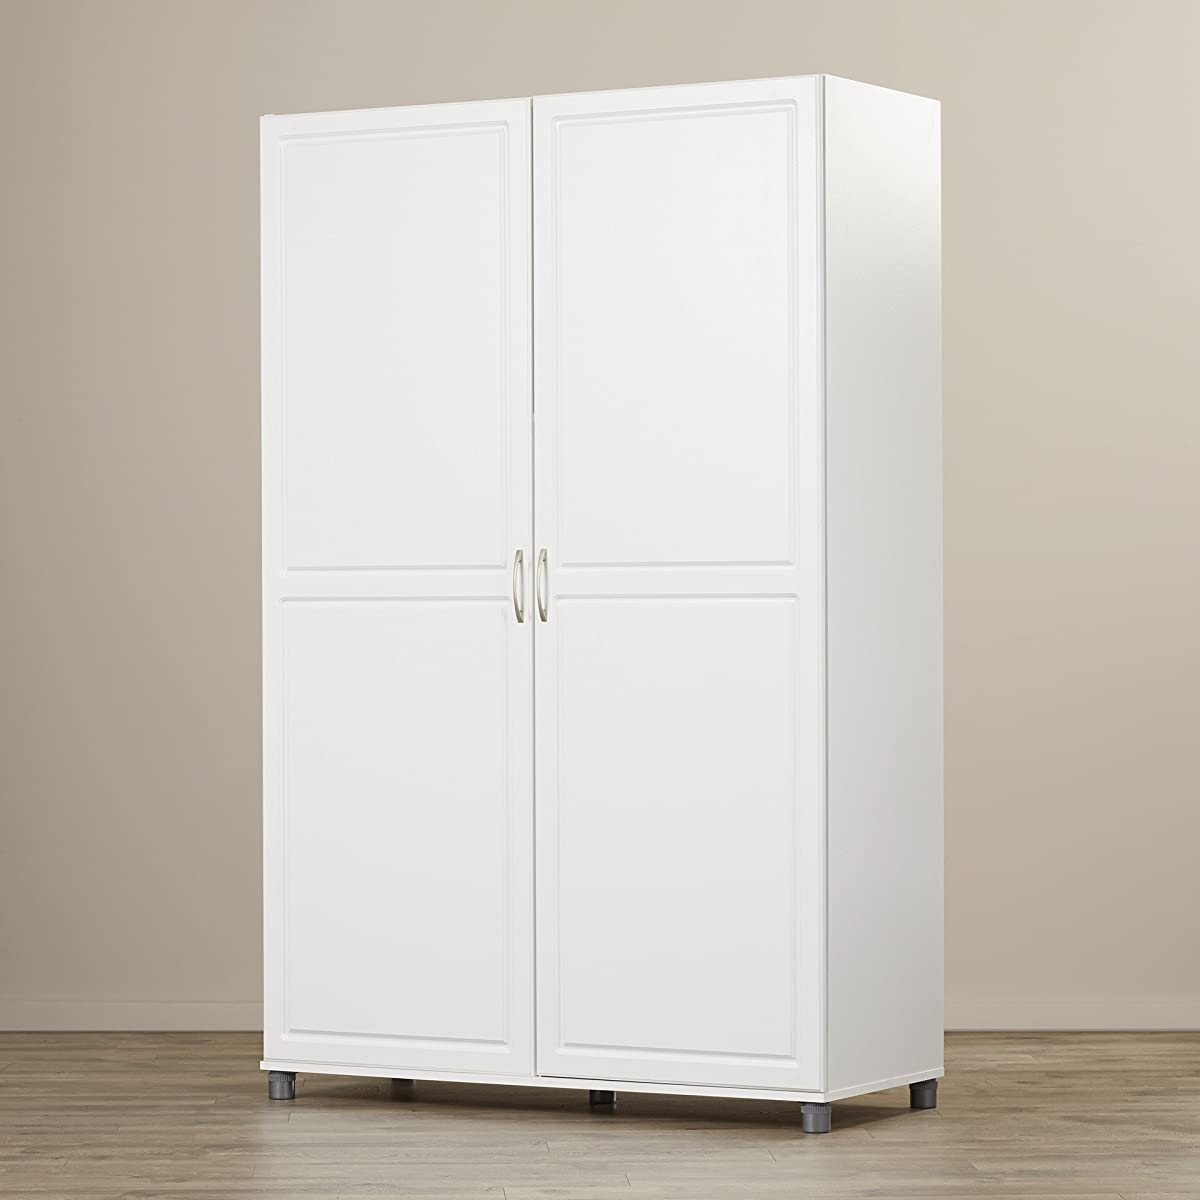 Solid Closet Storage Wardrobe Armoire Cabinet Bedroom